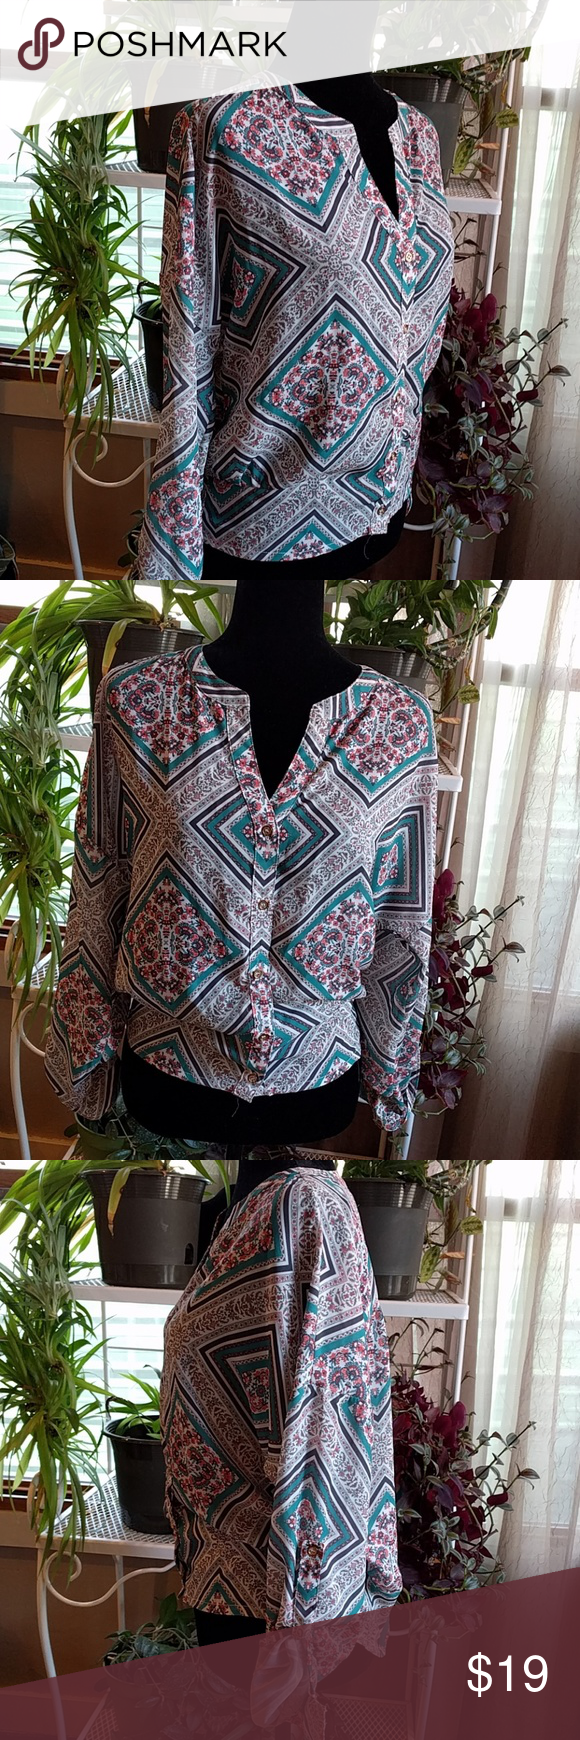 Bohemian style blouse Beautiful bohemian style blouse  xhilaration  size medium 100% polyester Slightly gathered at hip offers flouncy look Tops Blouses